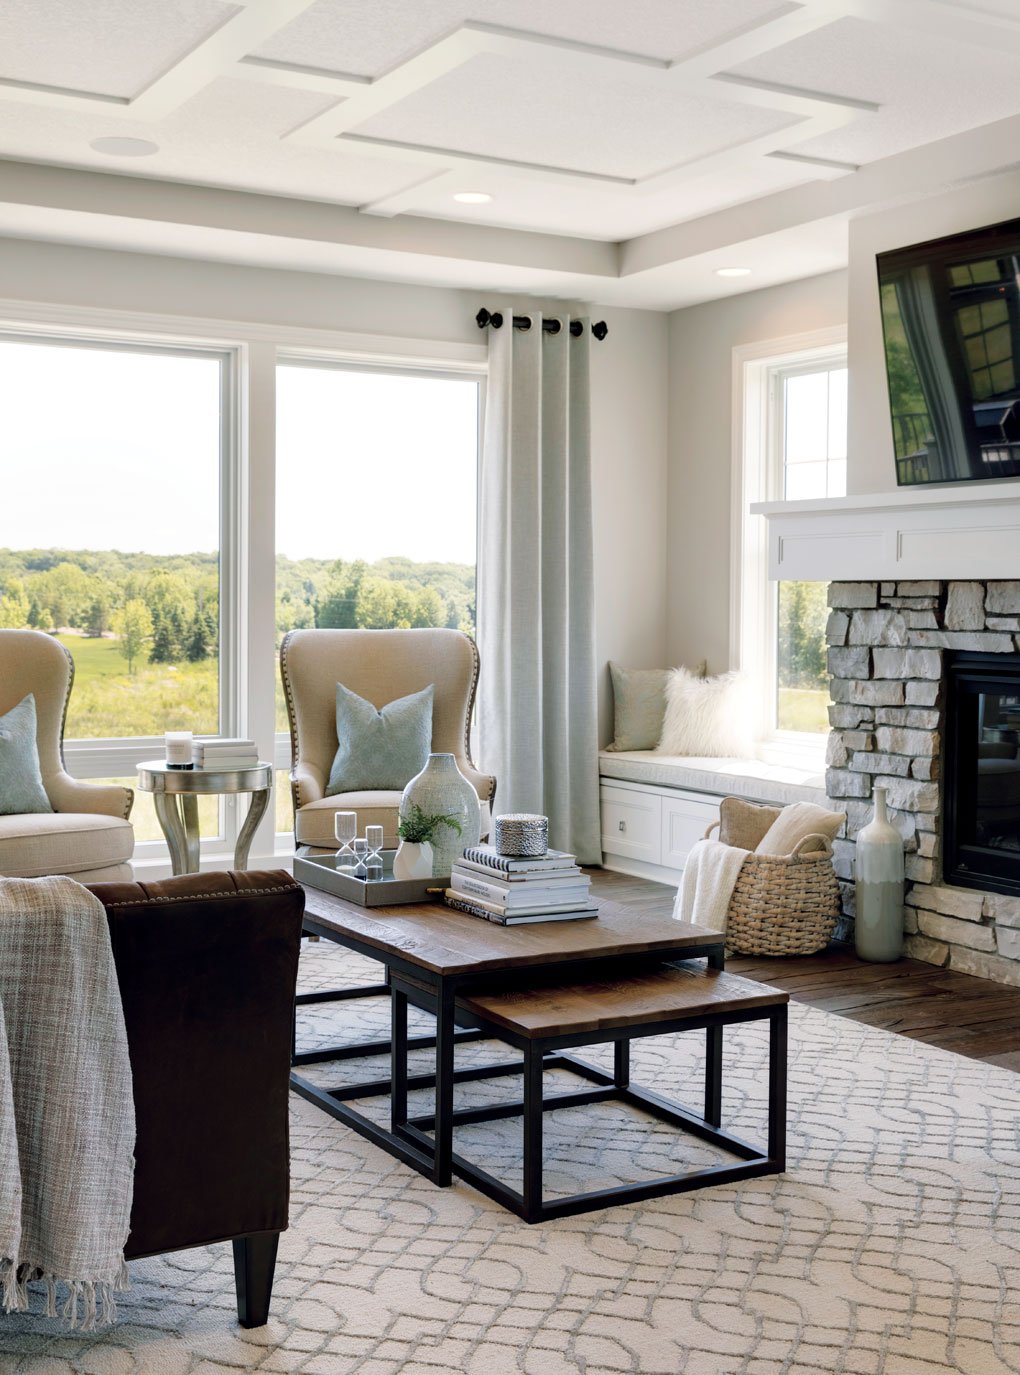 A great room with a coffered ceiling, floor to ceiling windows, and stone fireplace is a comfortable, welcoming space.